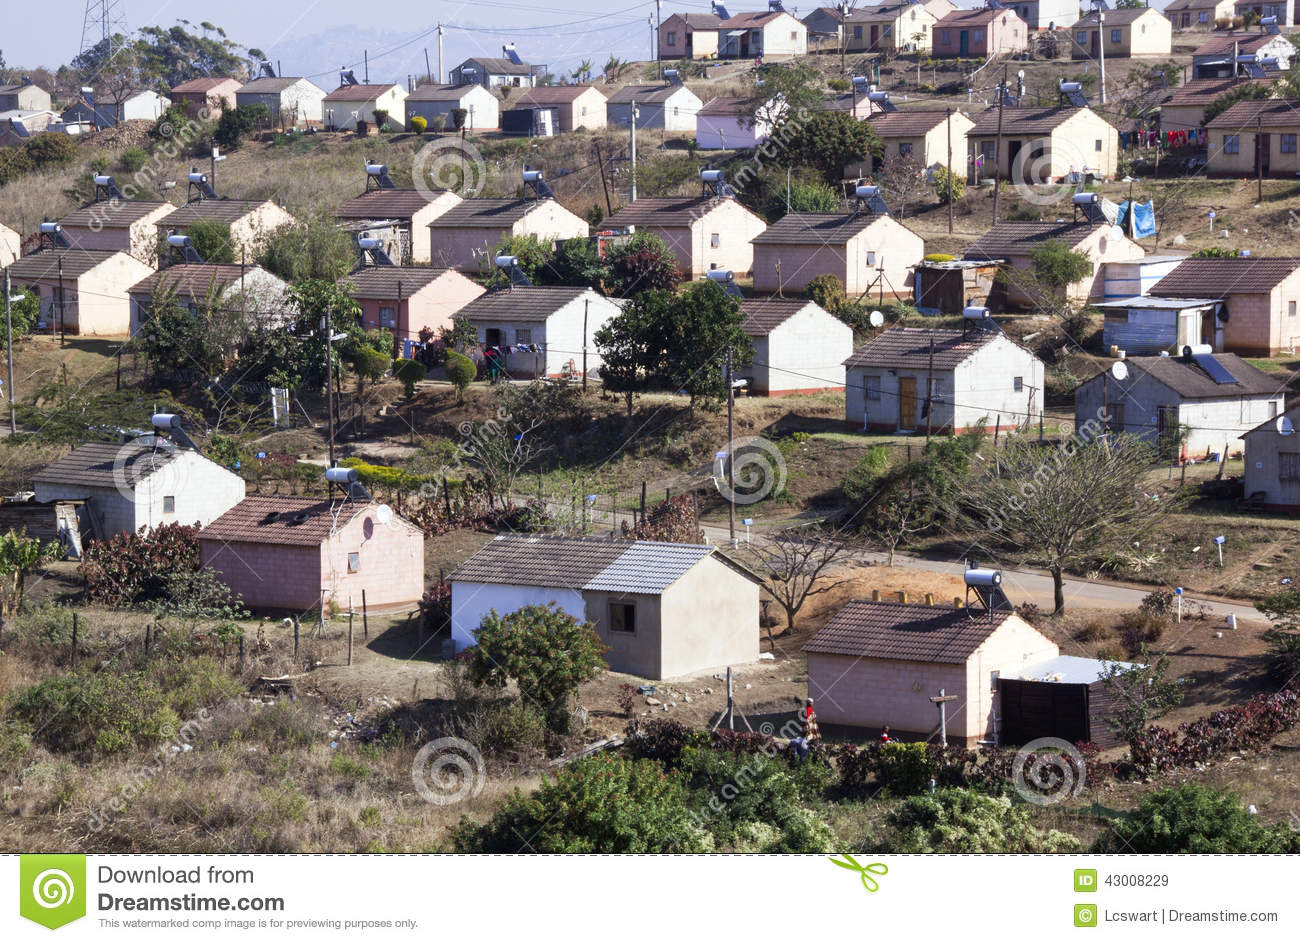 Low Cost Township Houses in Durban South Africa